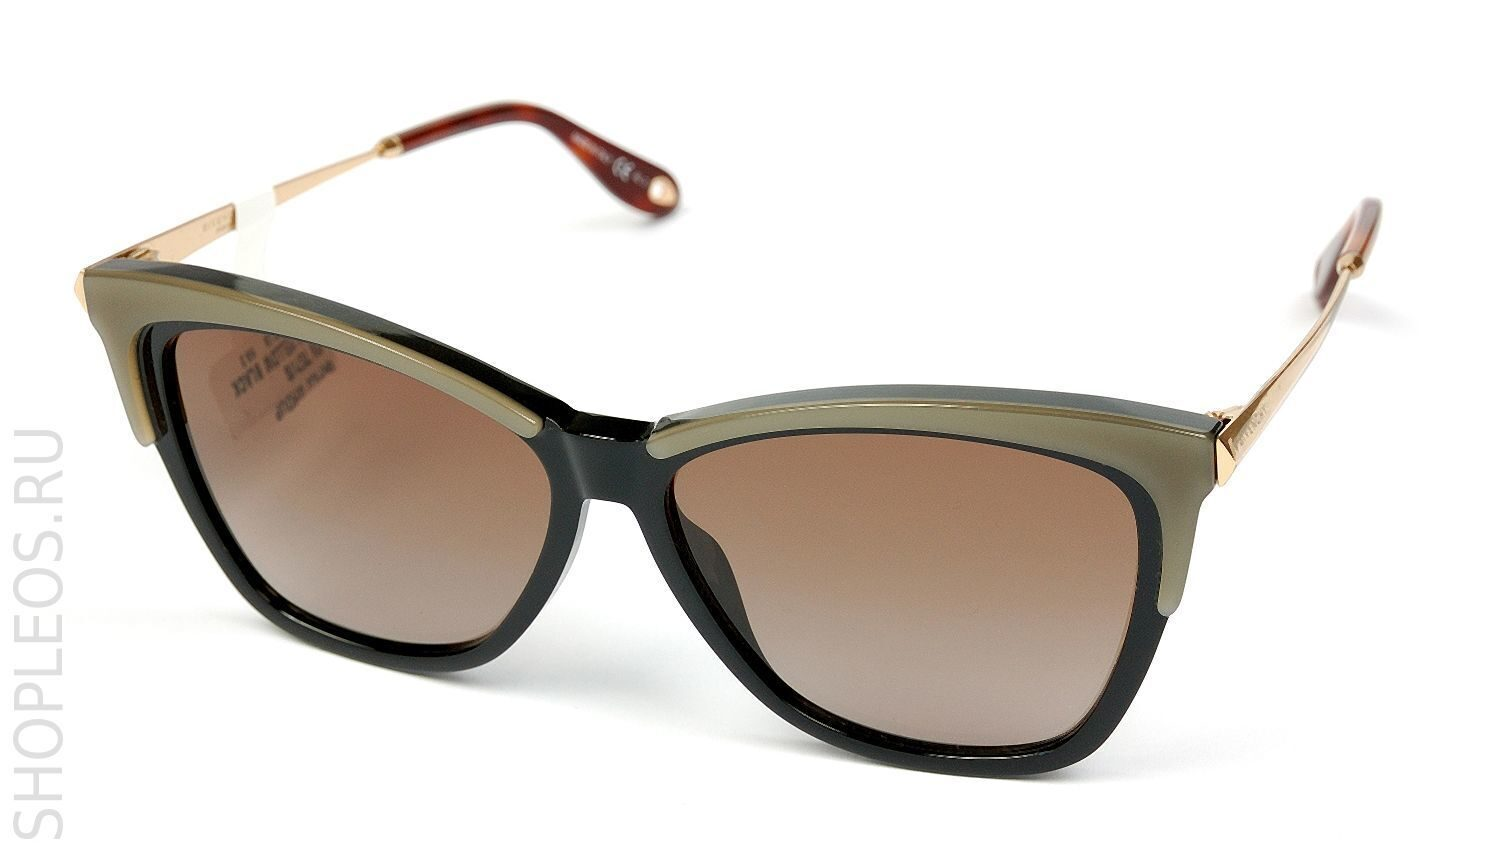 GIVENCHY WOMAN GV 7071/S 4CW